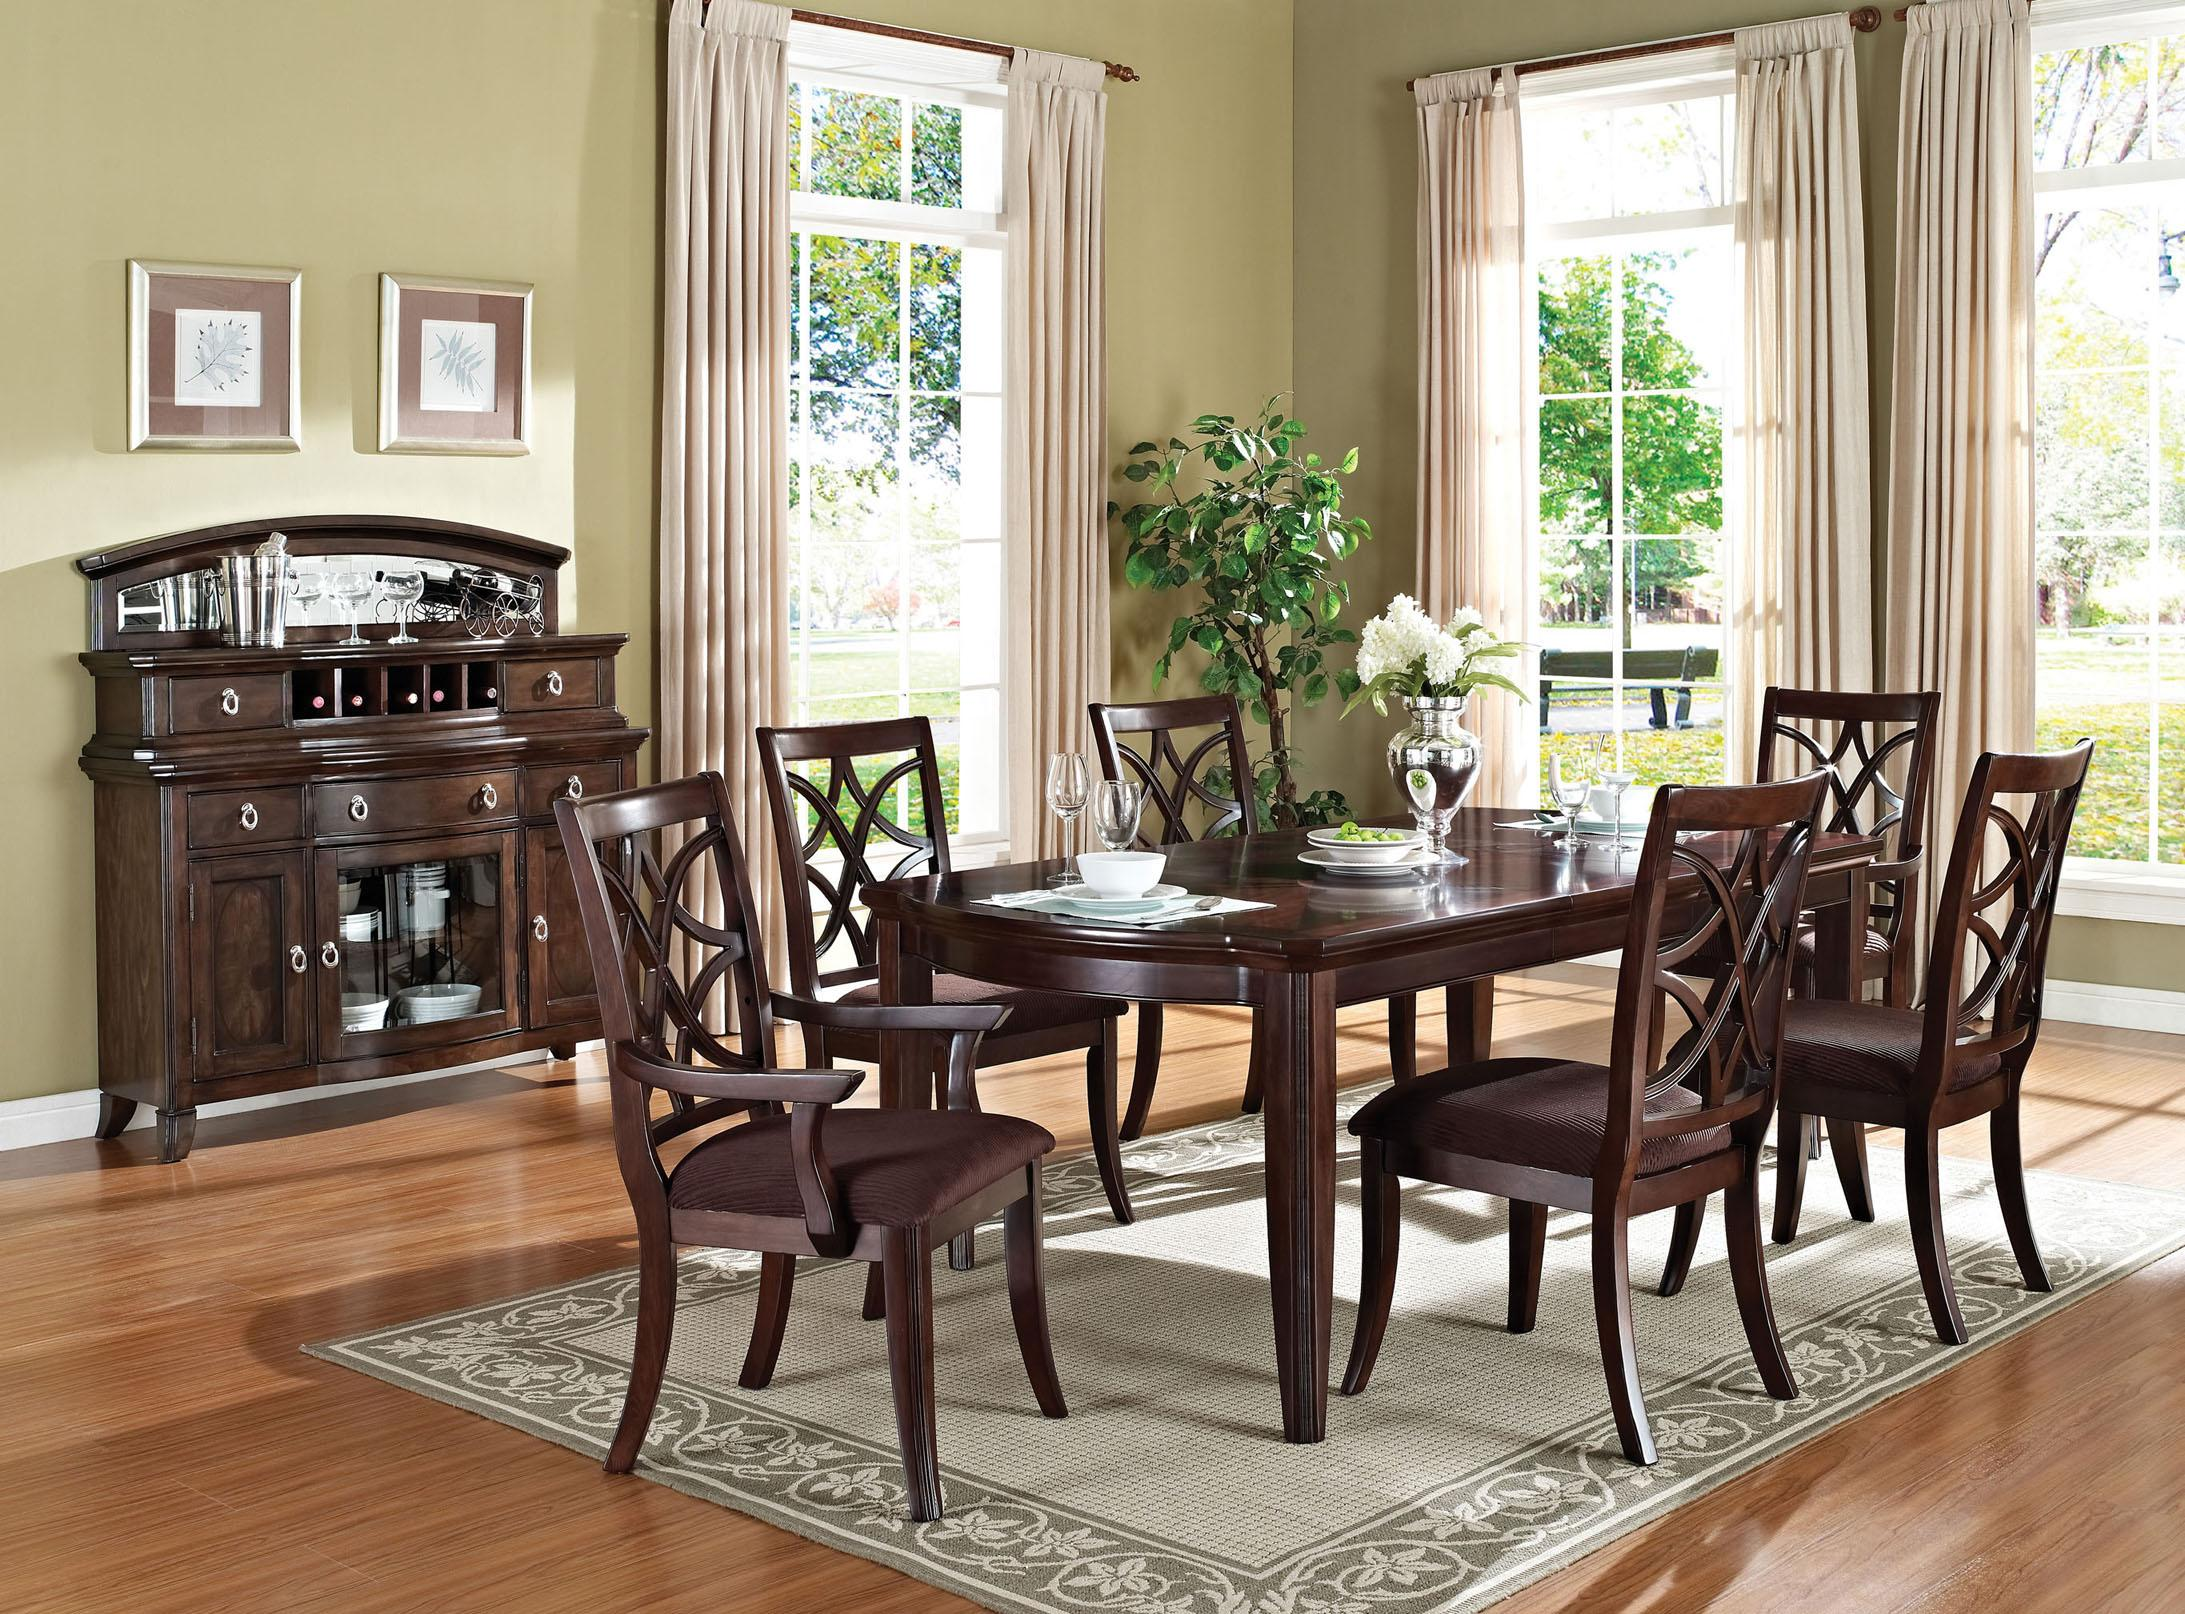 Acme Furniture Keenan Formal Dining Room Group - Item Number: 6025 Formal Dining Room Group